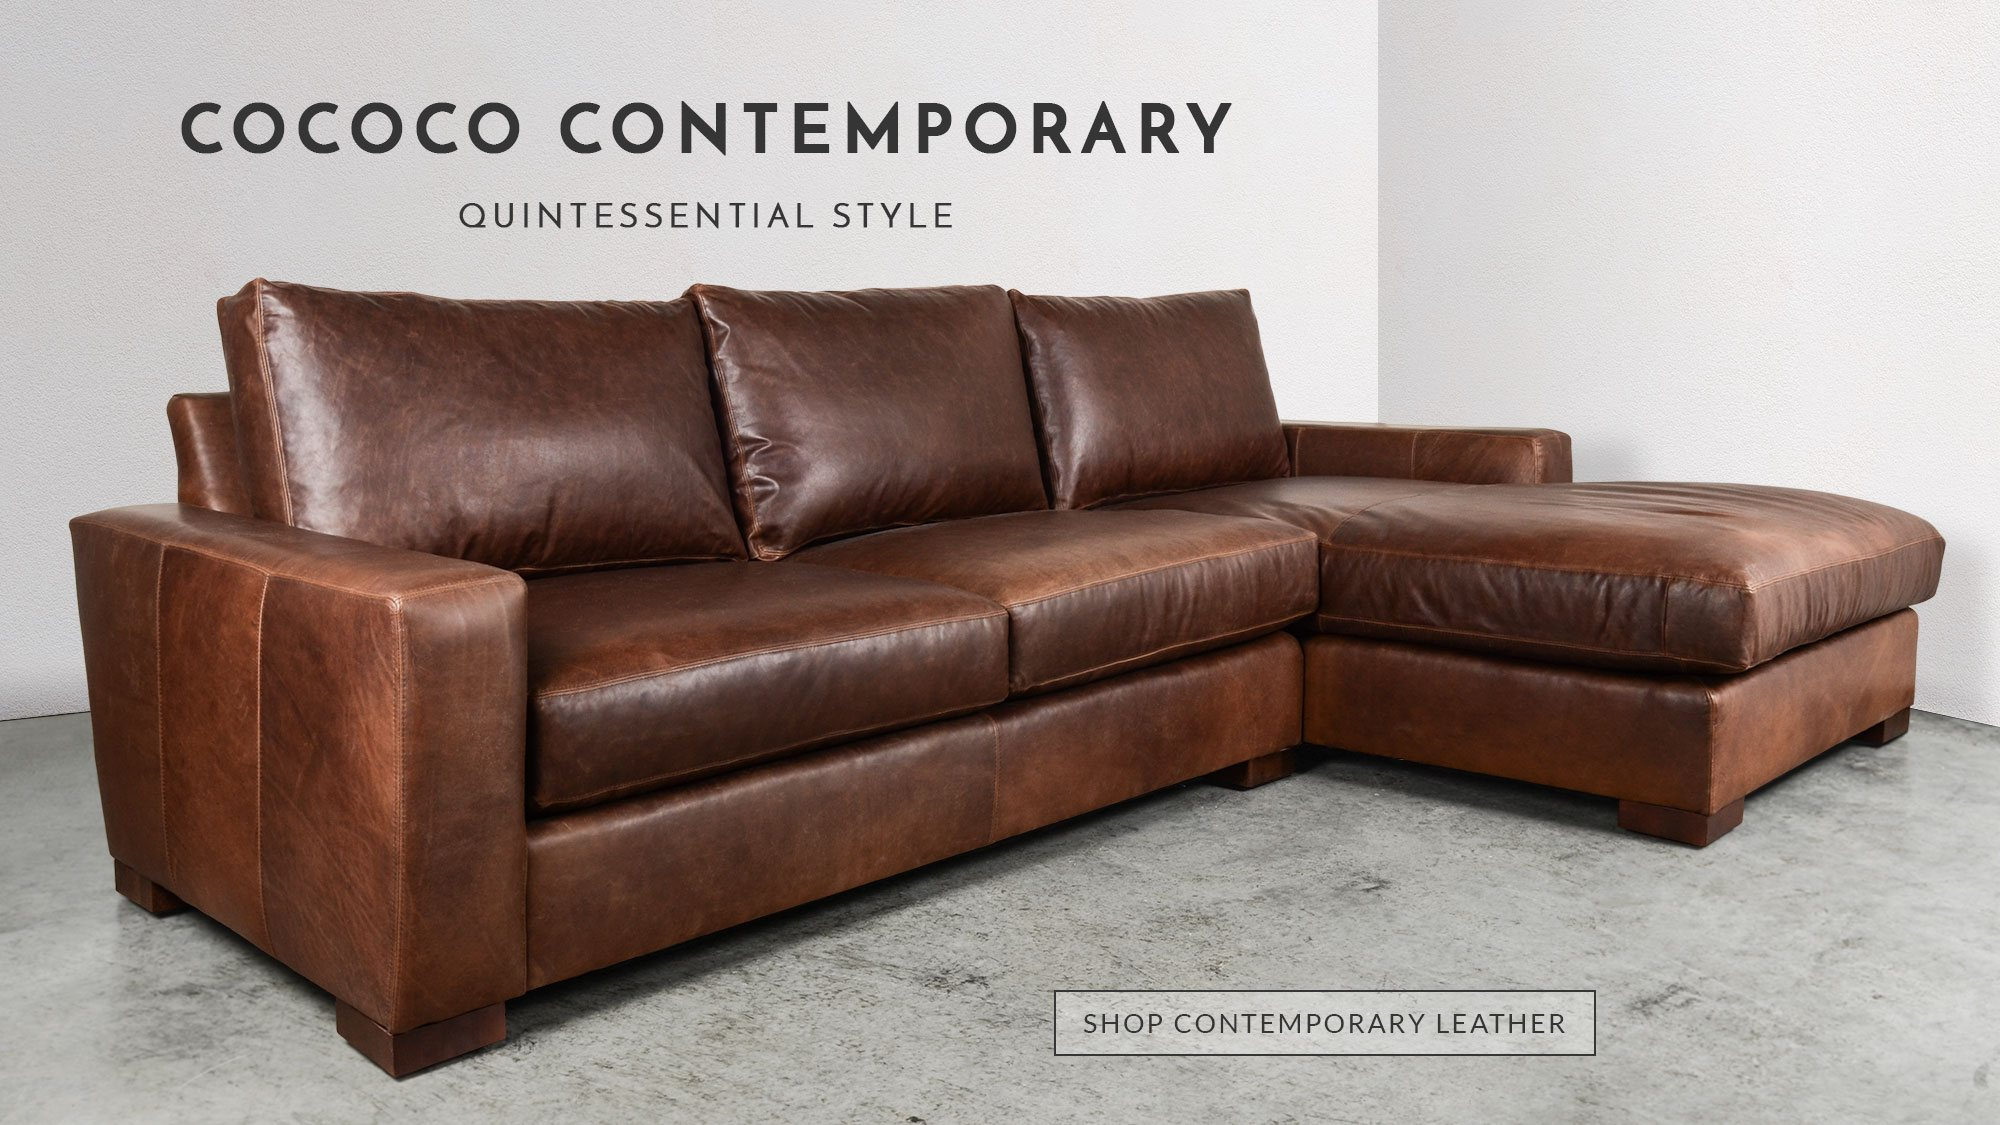 Chesterfield Sofas, Modern Furniture Made In Usa | Cococohome Pertaining To Gina Blue Leather Sofa Chairs (Image 7 of 20)